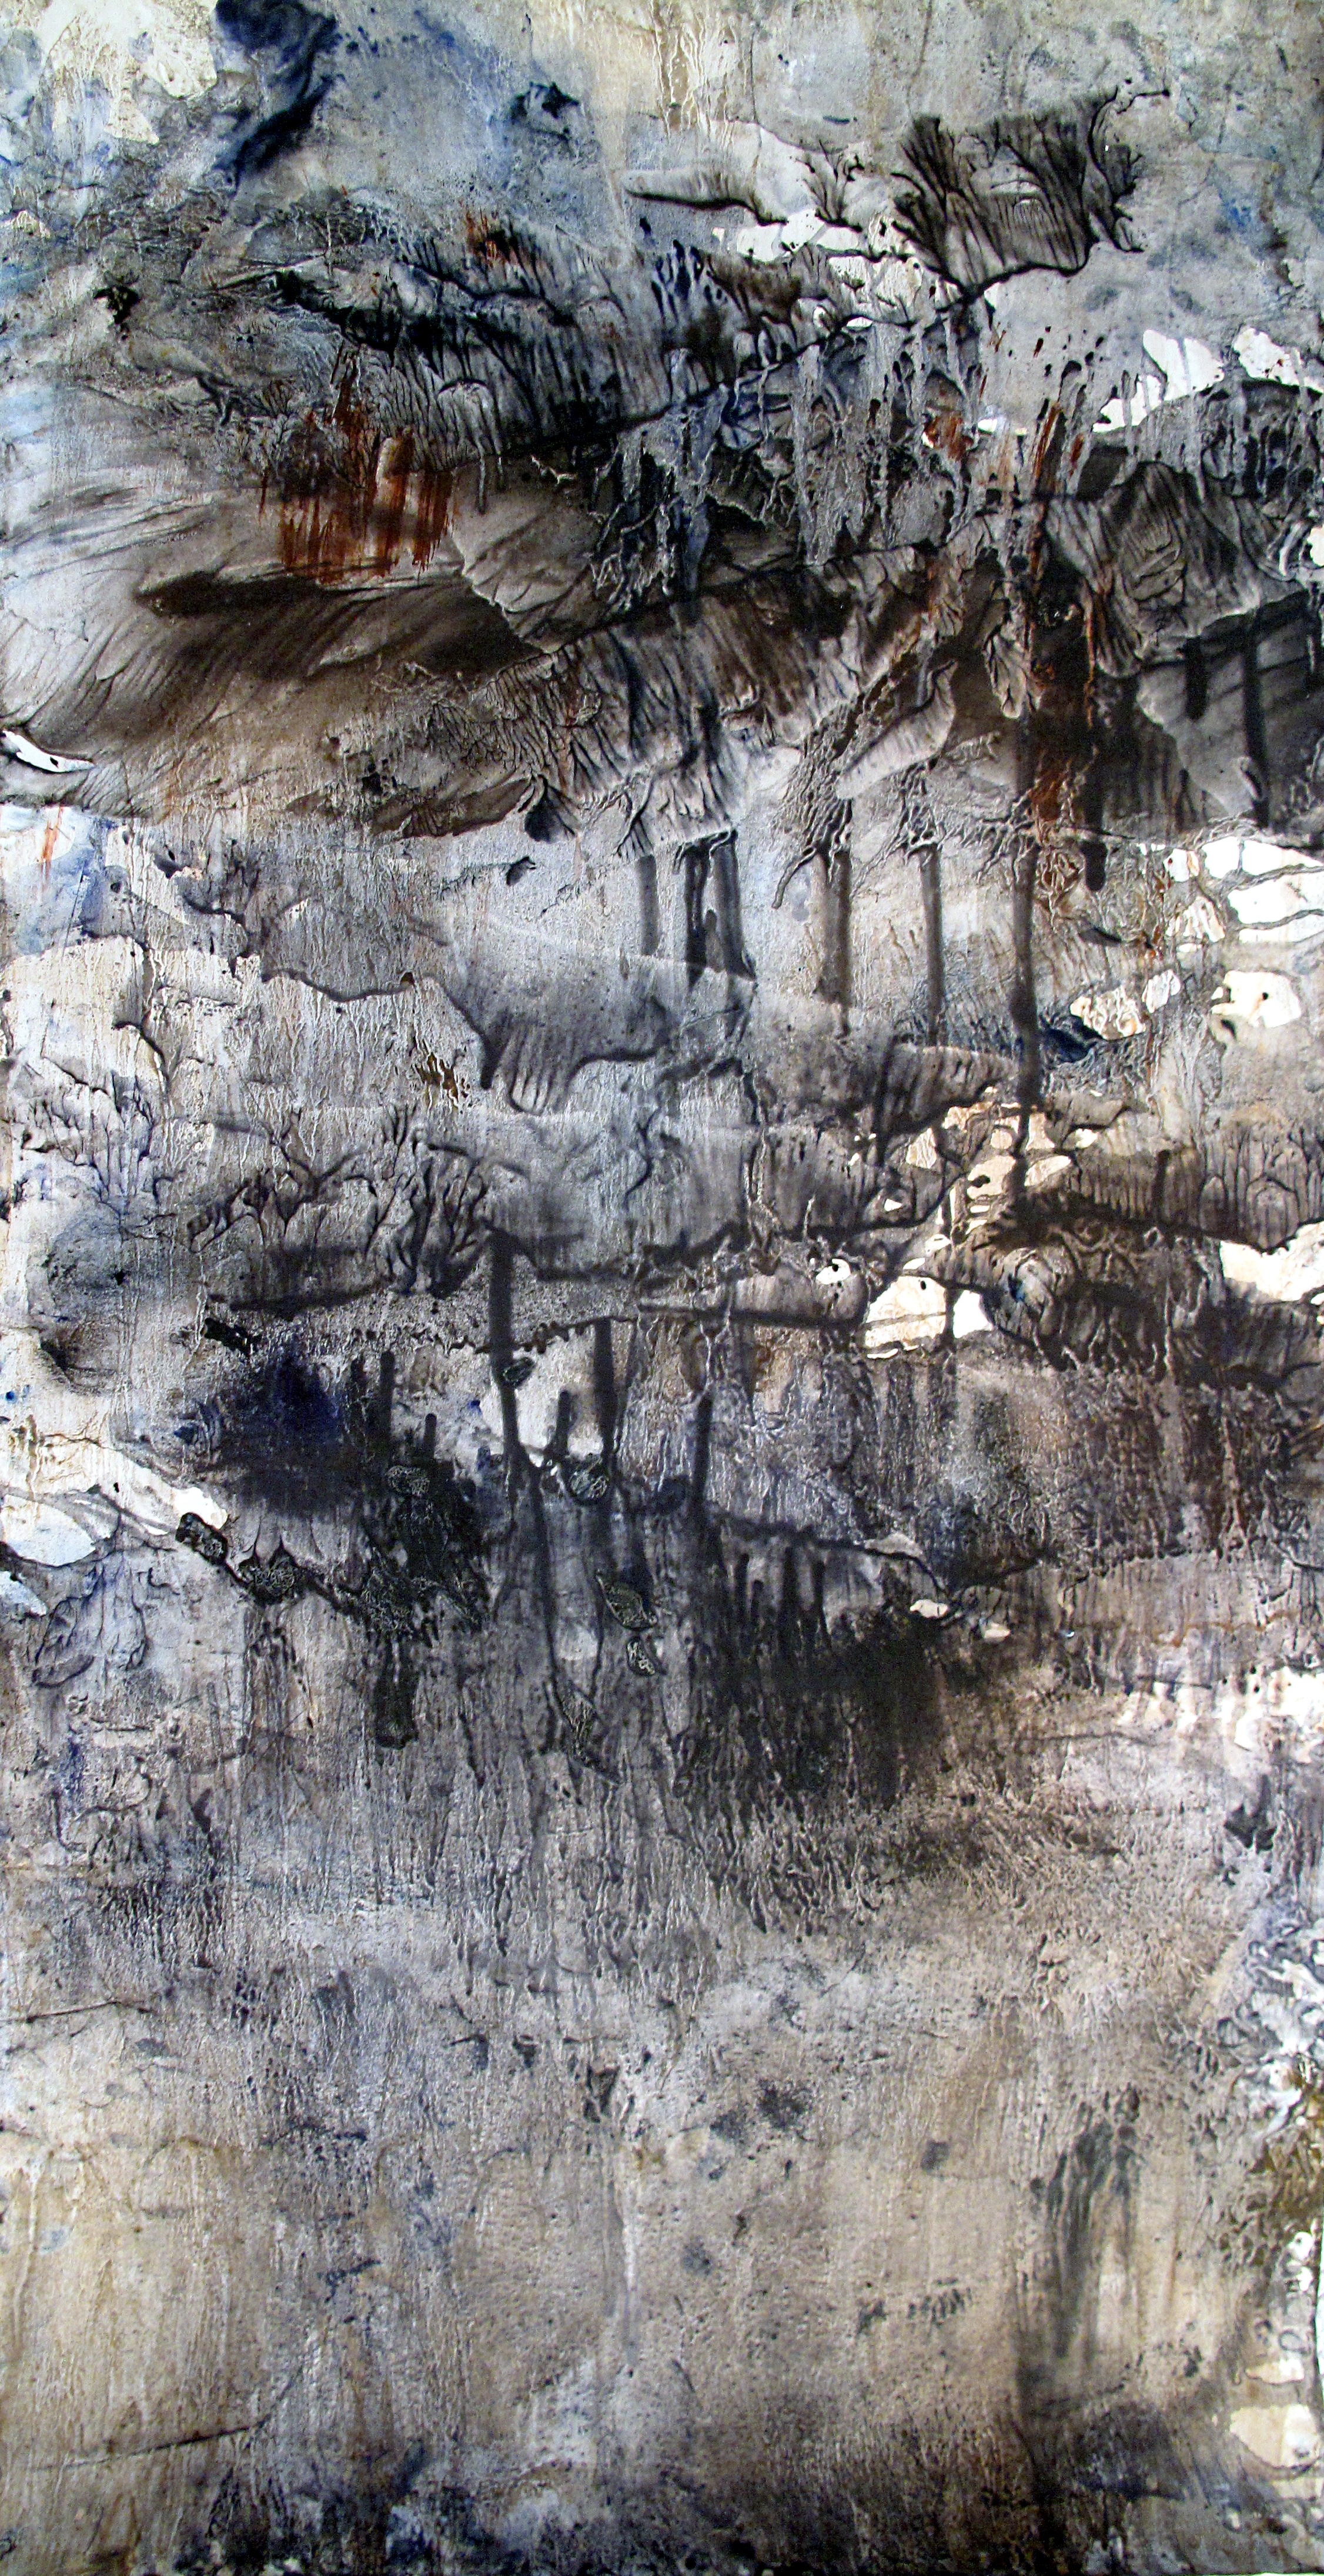 Yu Zhao, Grotte, tempera/paper/canvas, 150x75cm, 2015, private collection